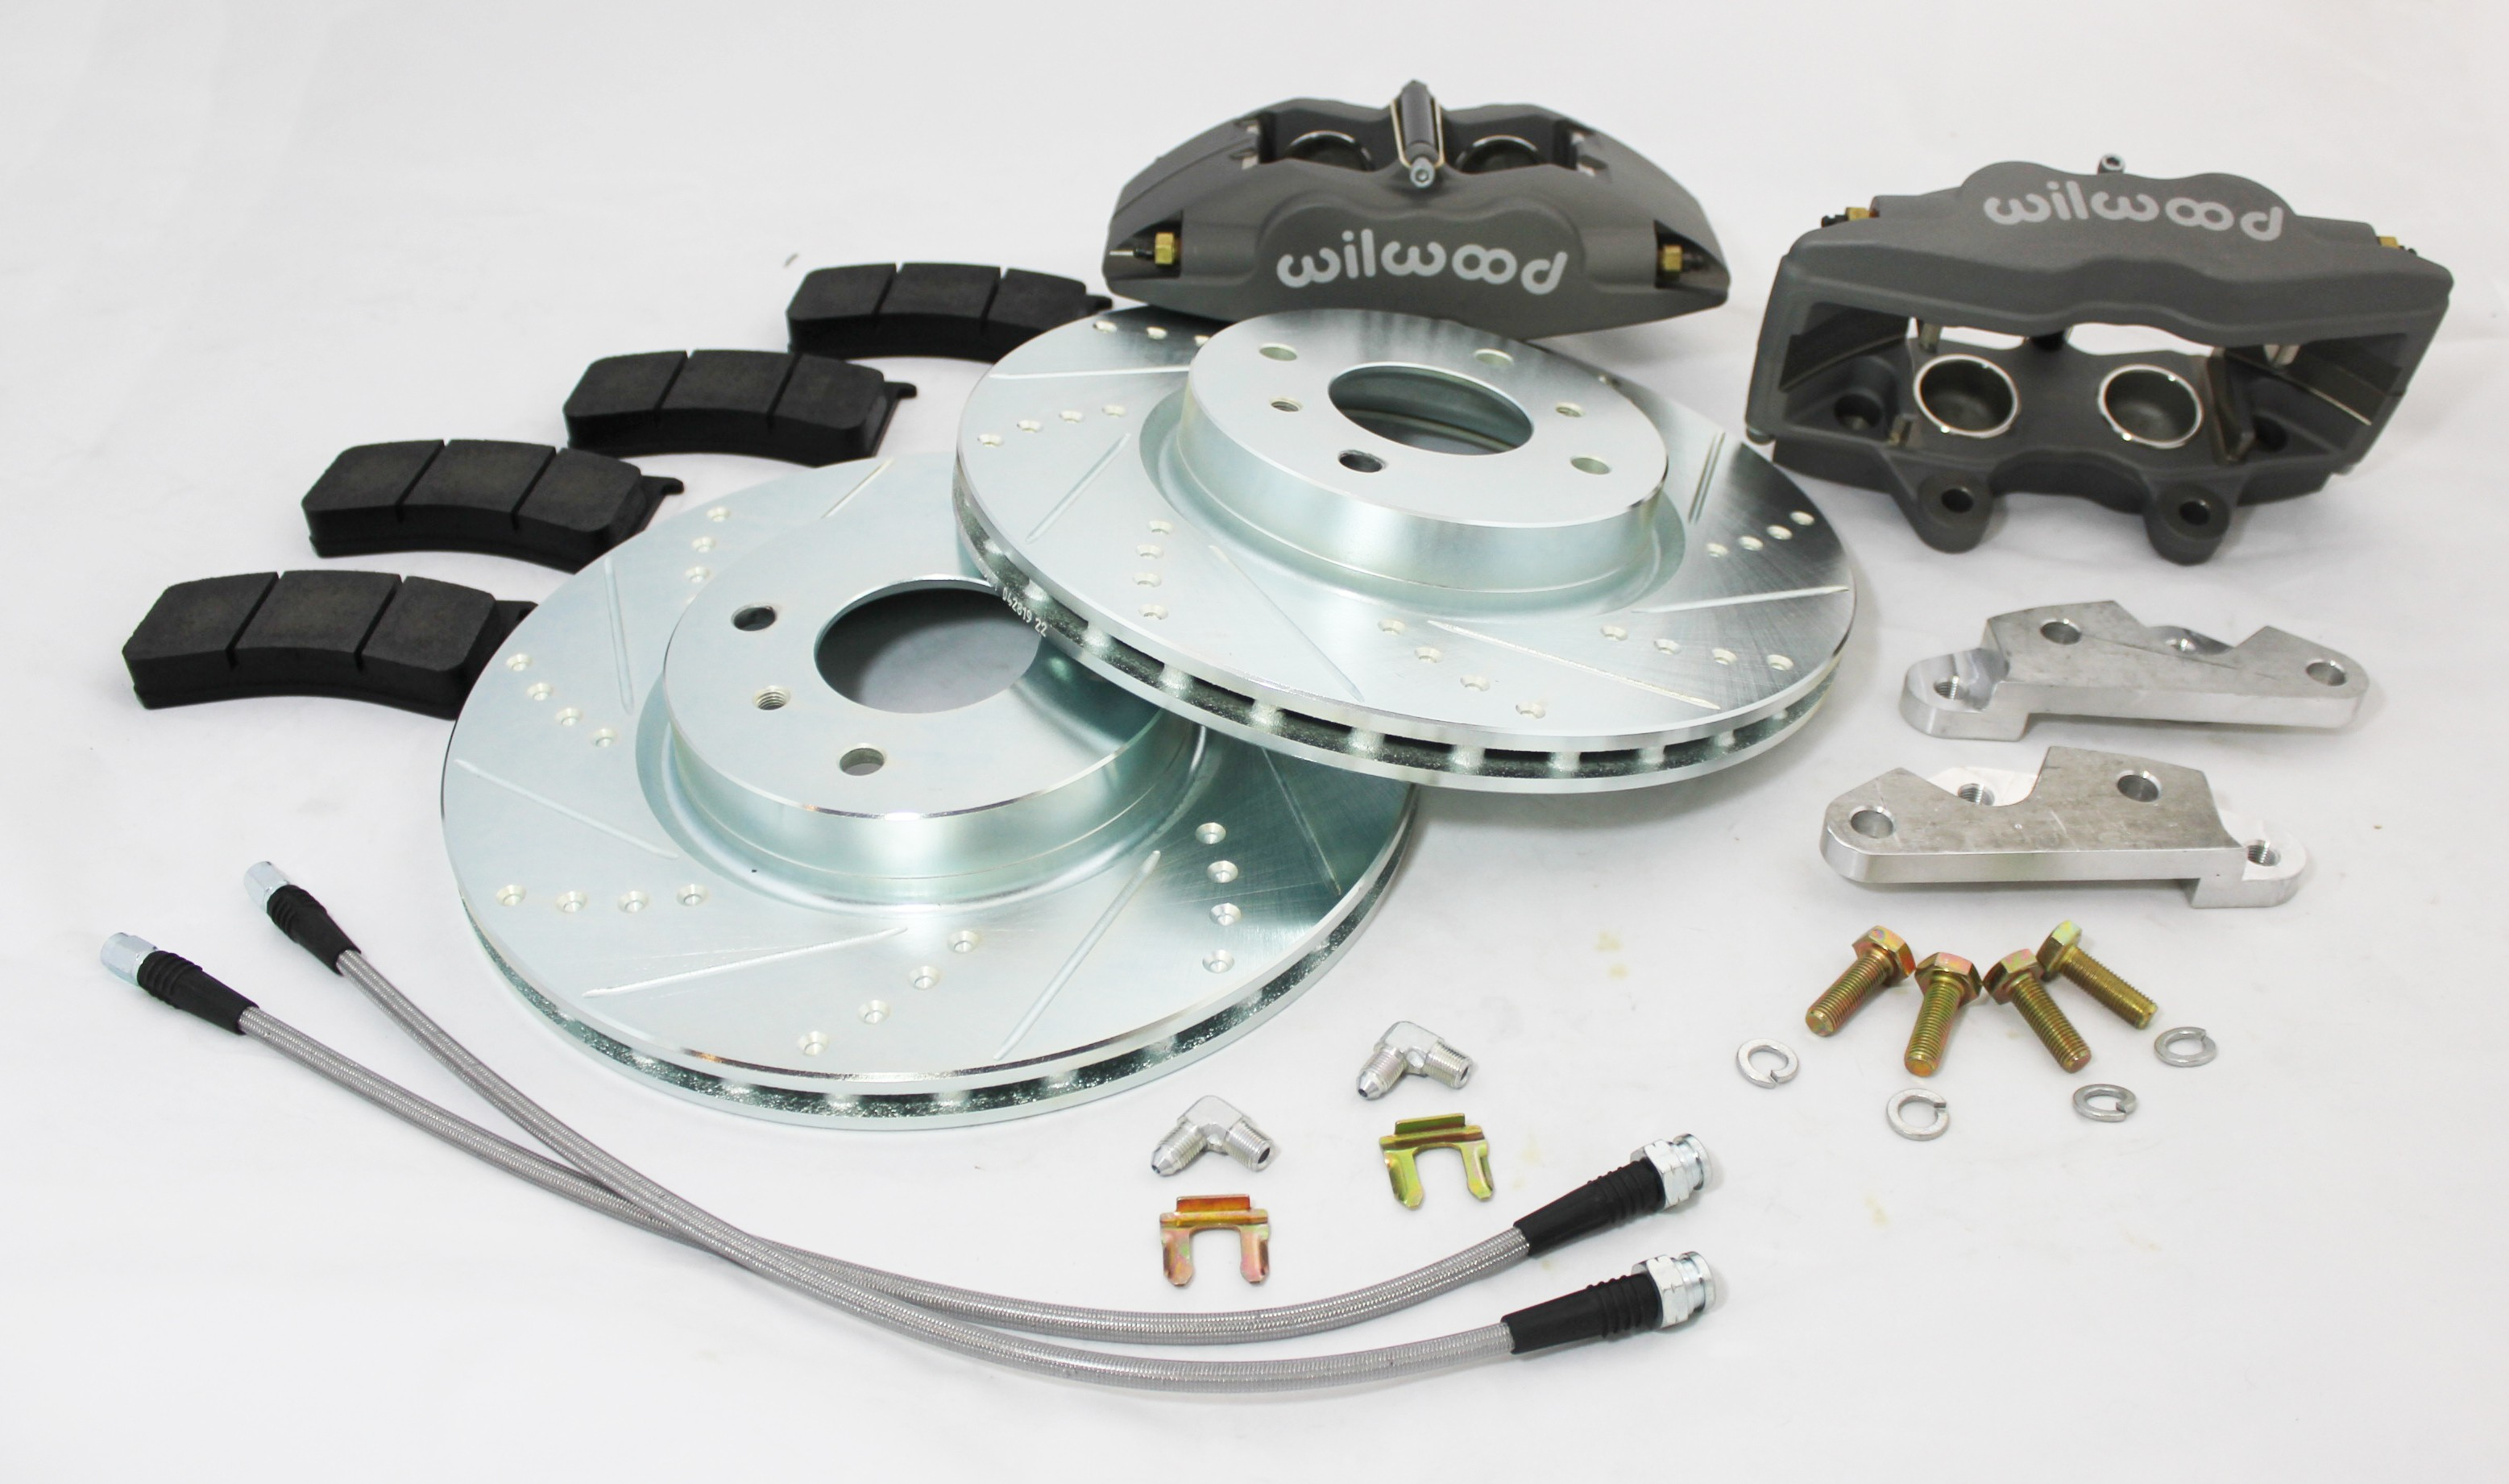 240z 260z 280z front wilwood brake upgrade kit superlight calipers